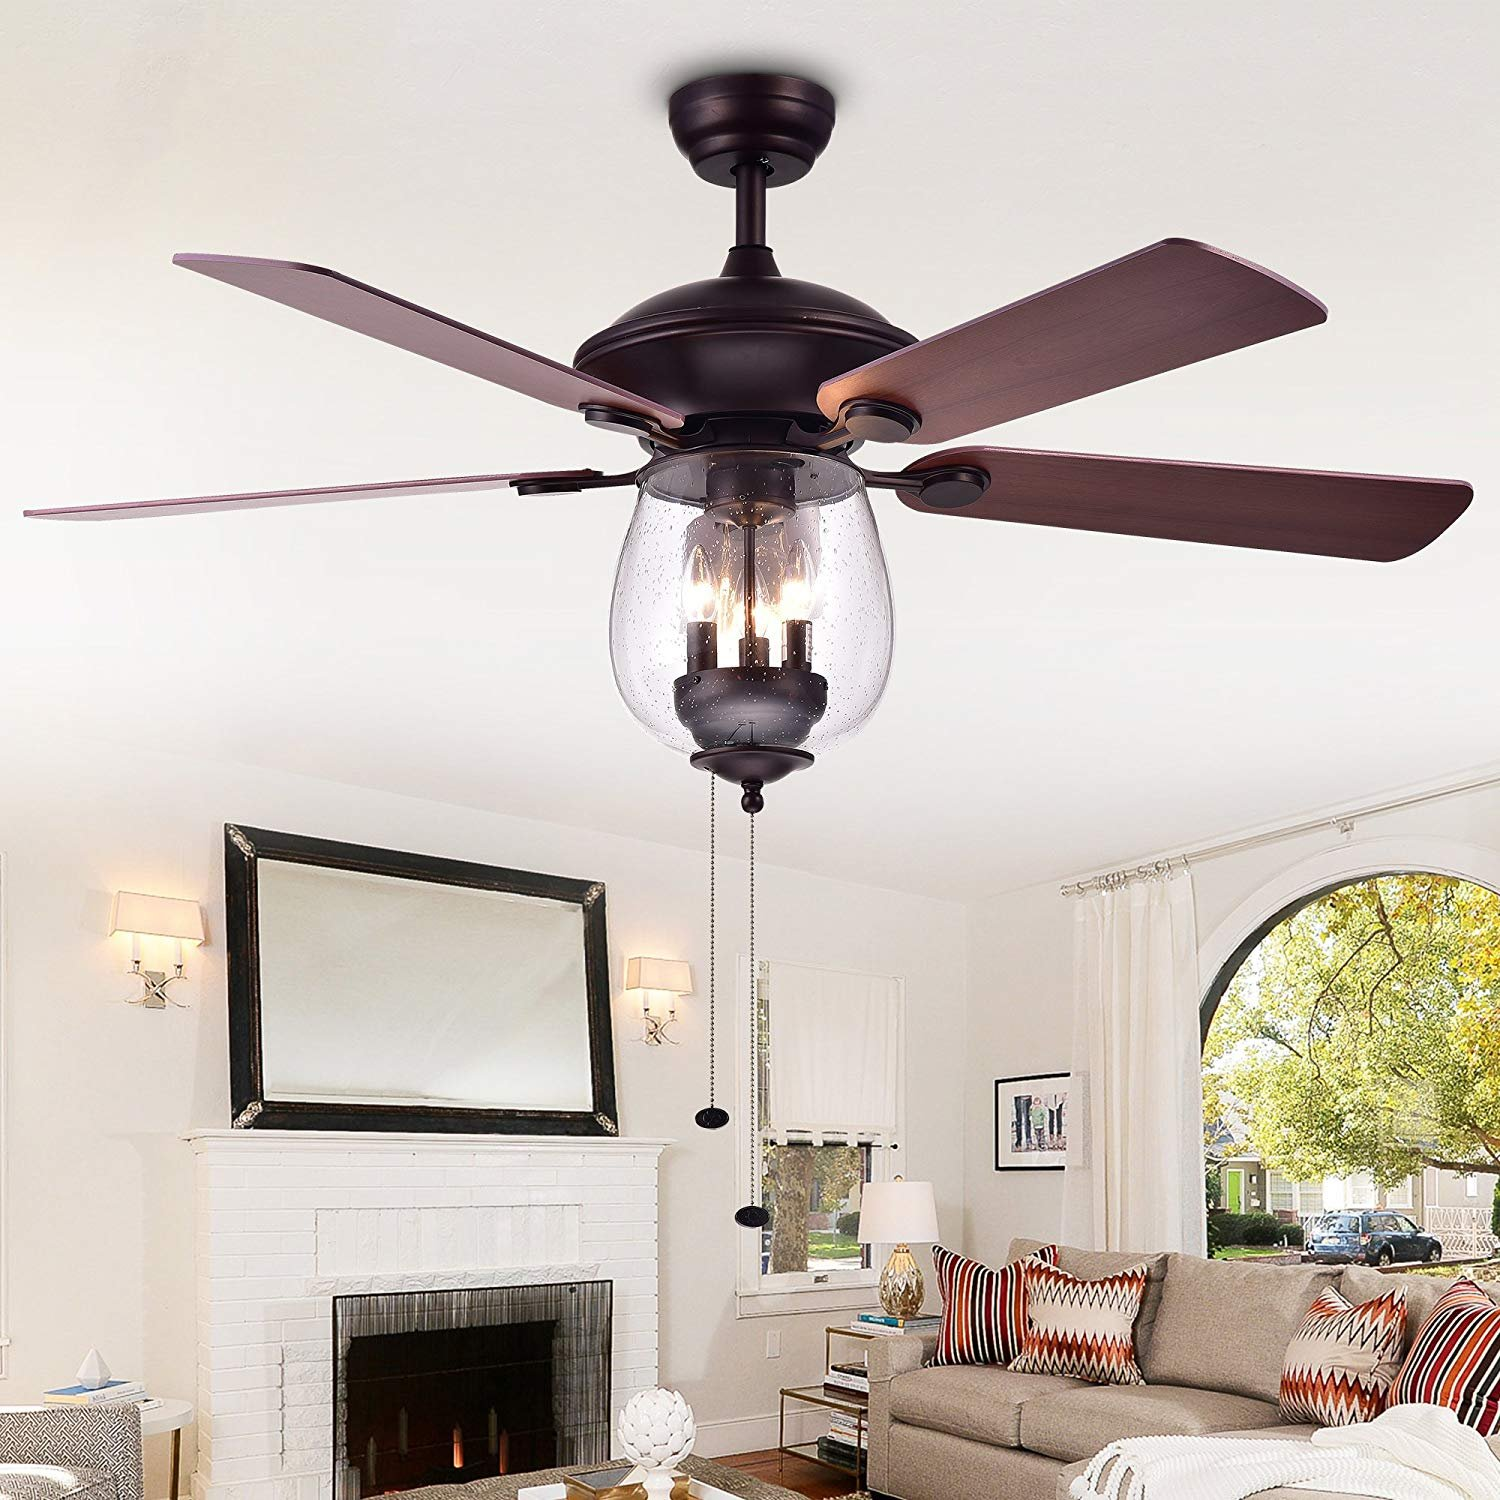 52 Ceiling Fan with Light Glass Bowl Ceiling Light Retro Metal Pendant Lighting Chandelier